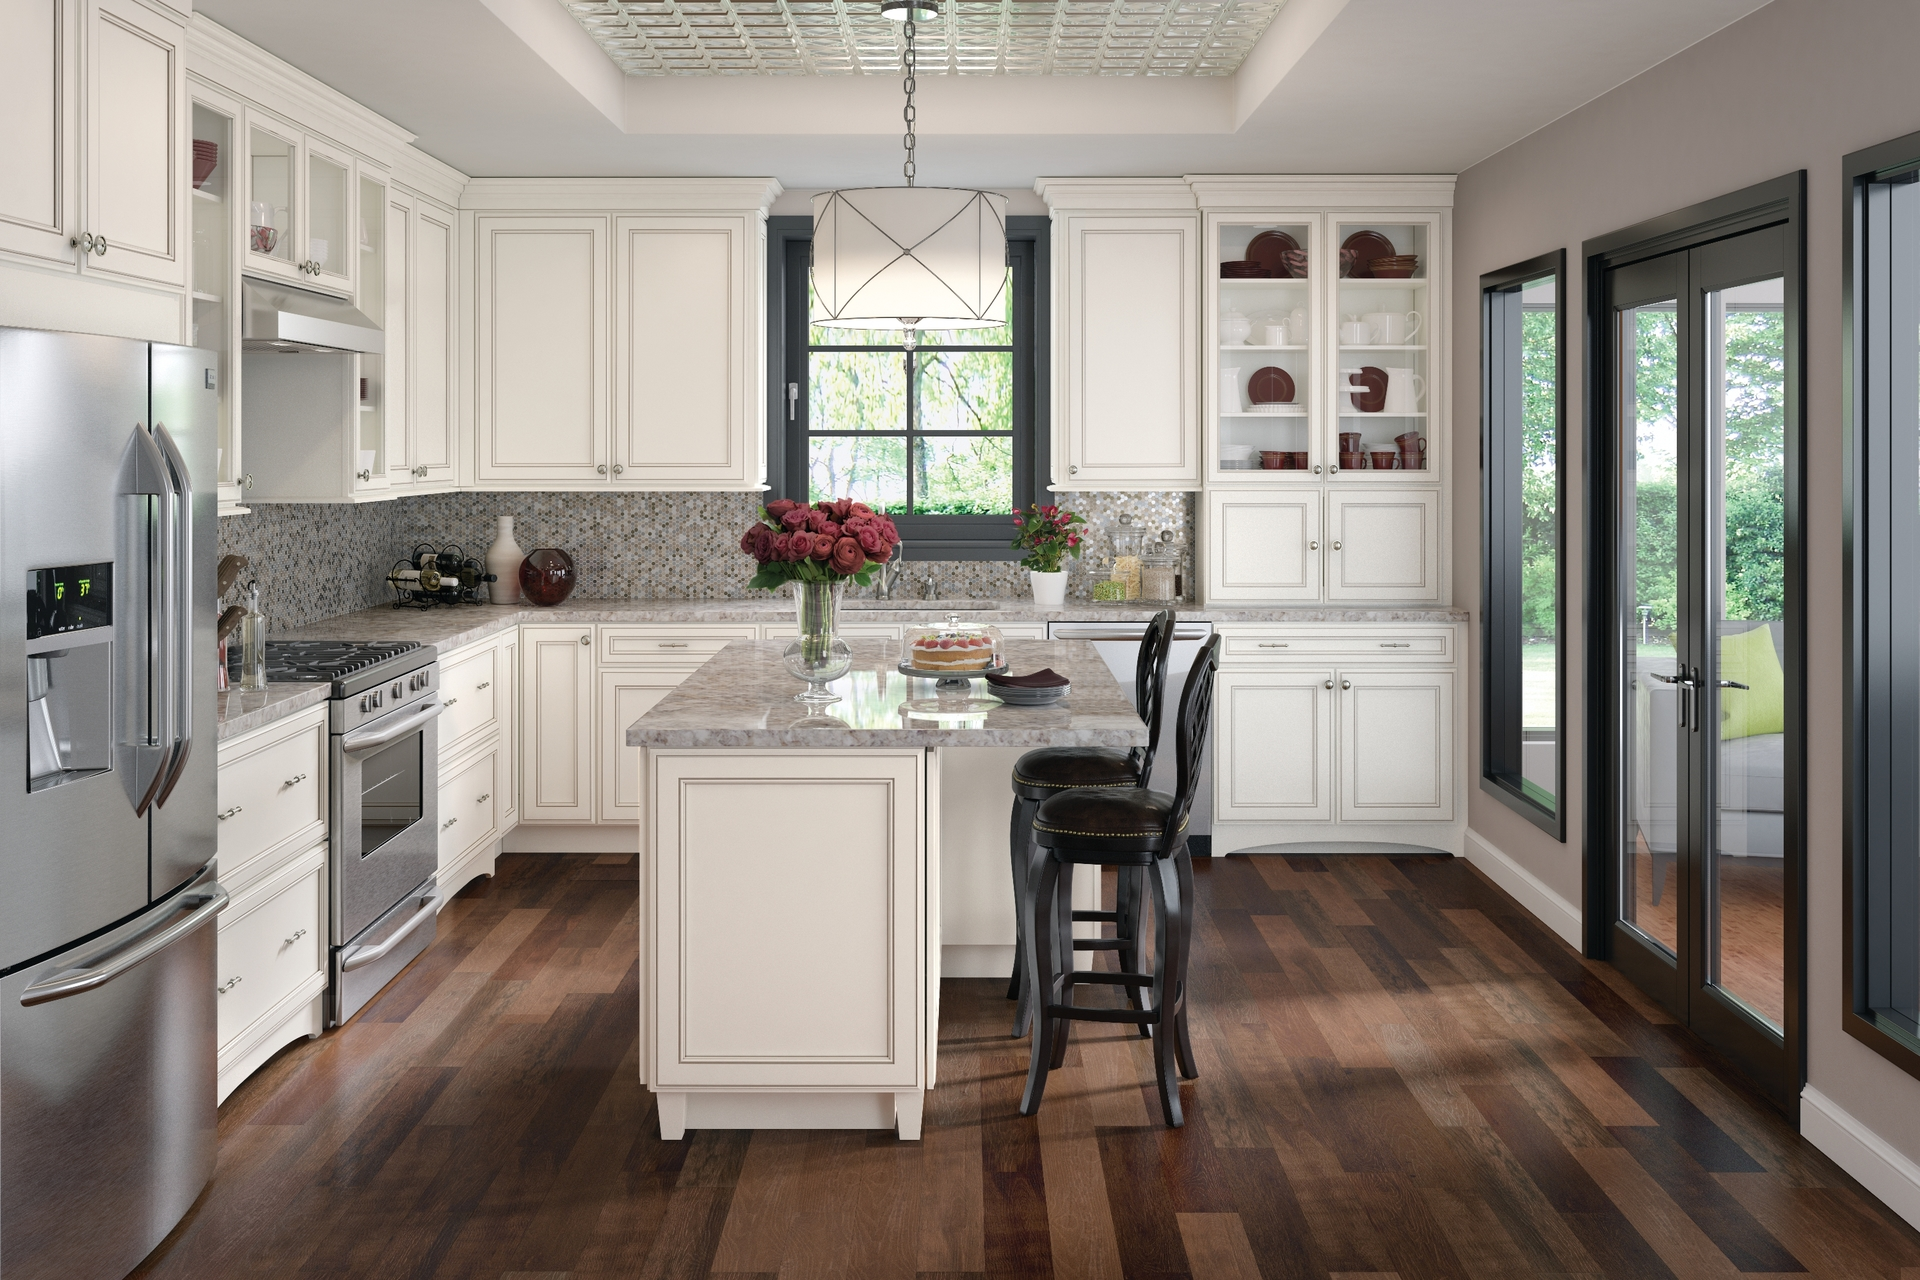 White Kitchen Cabinets Menards Cardell Kitchen Cabinets Hannaford Maple In Dove White